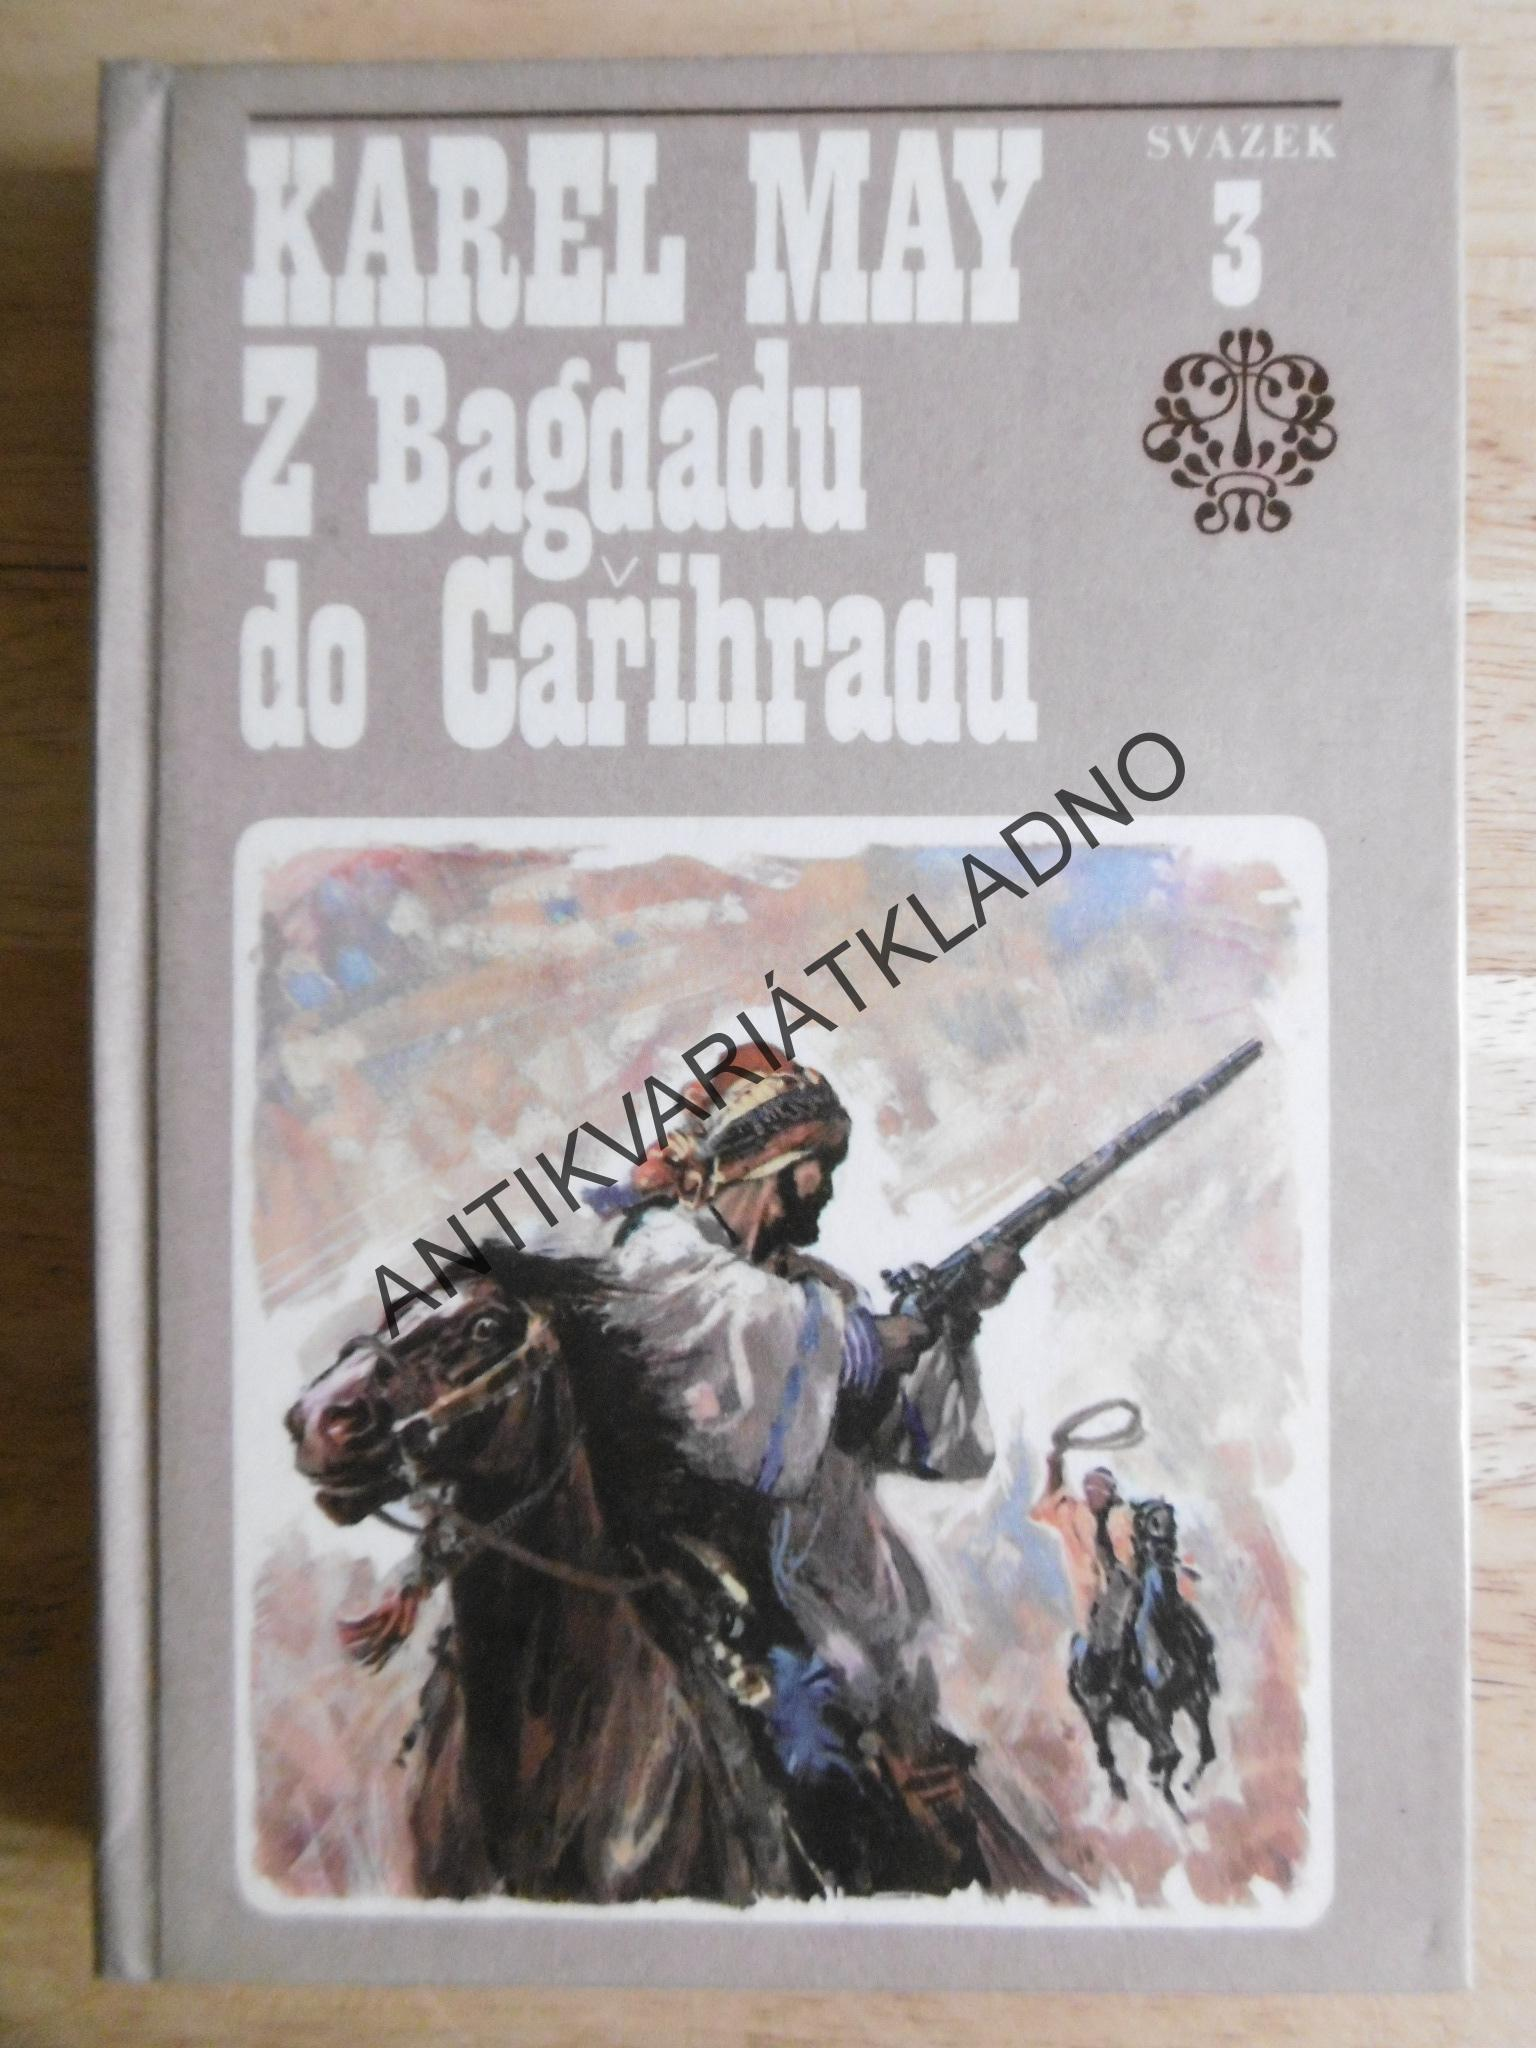 Z BAGDÁDU DO CAŘIHRADU, PADIŠÁH 3., KAREL MAY, **an